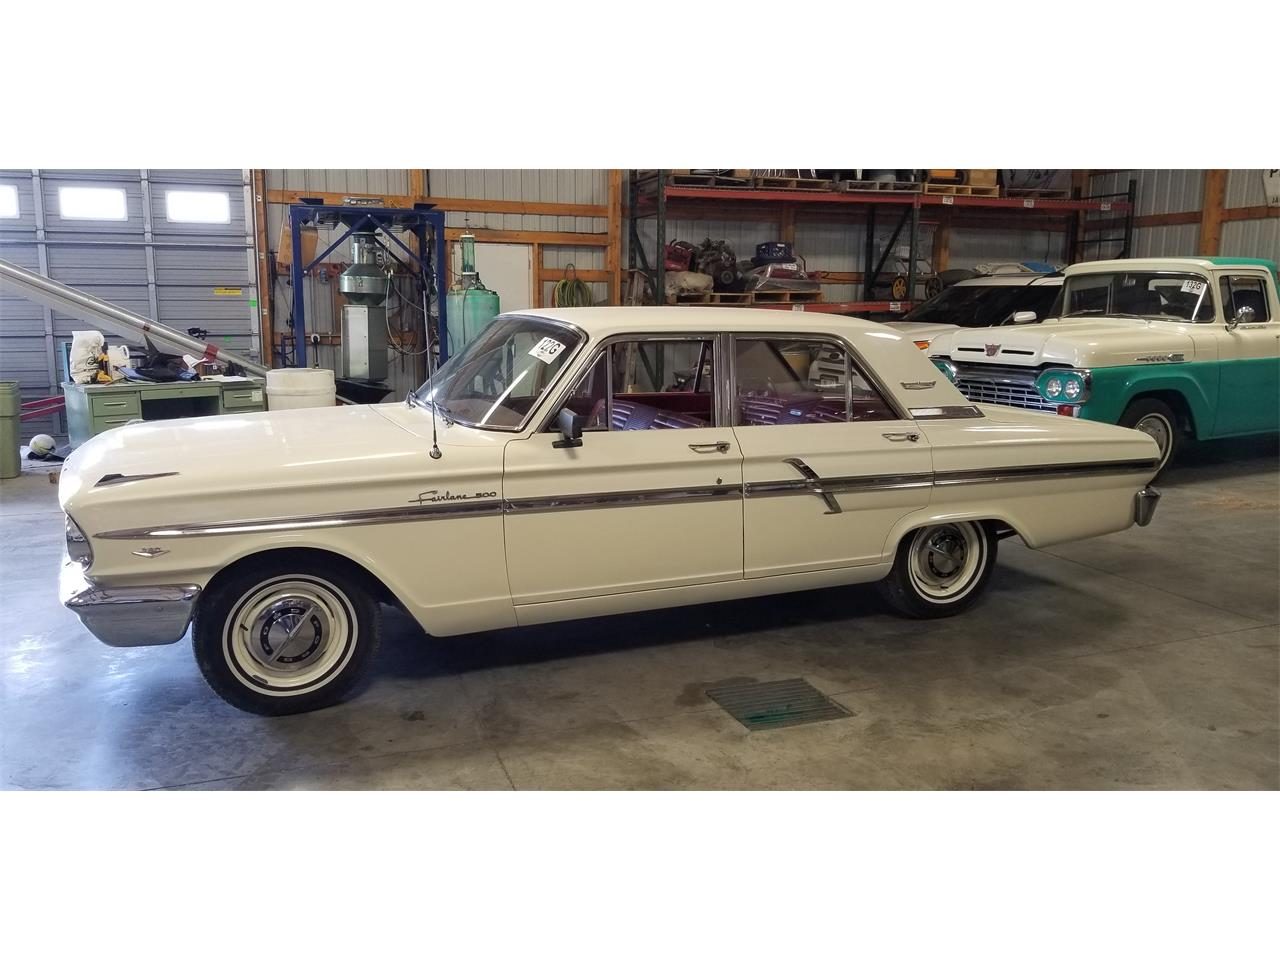 1964 Ford Fairlane 500 (CC-1323325) for sale in Council Bluffs, Iowa